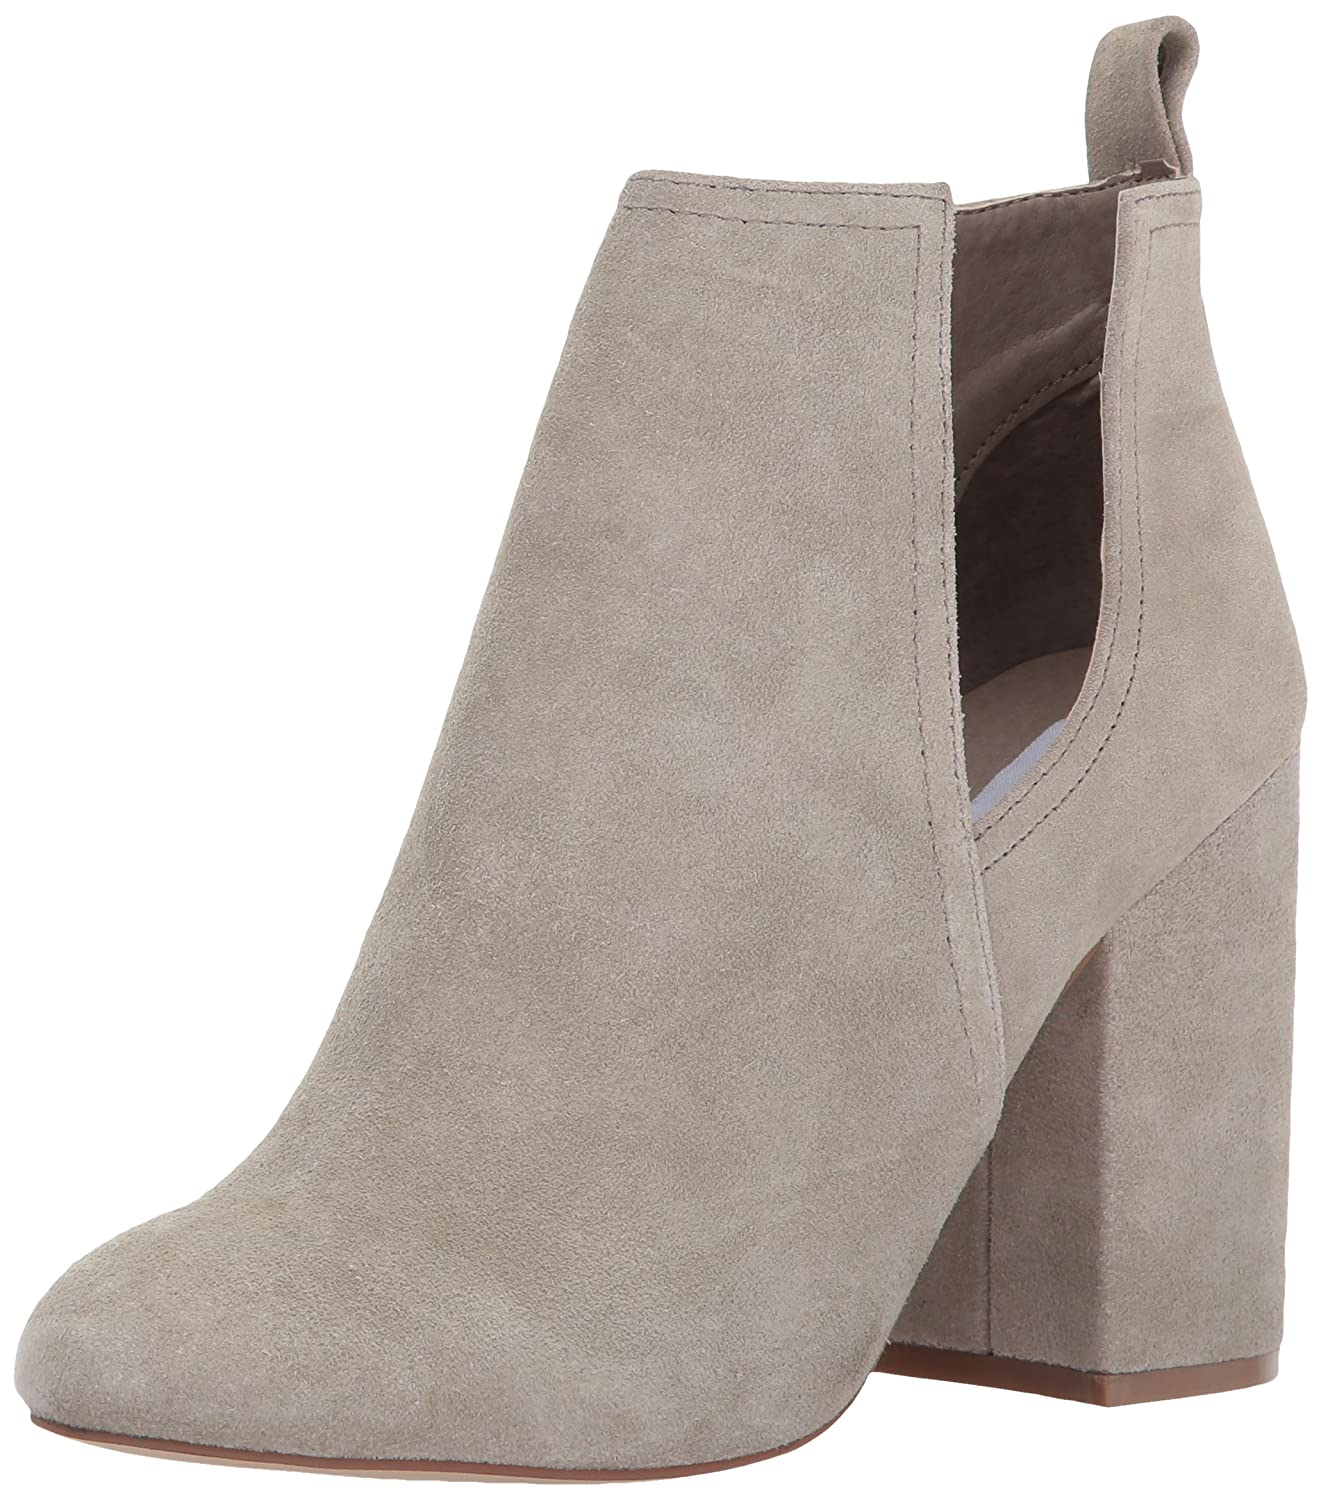 Steve Madden Women's Naomi Ankle Bootie B06X6JKW9X 5.5 B(M) US|Taupe Suede